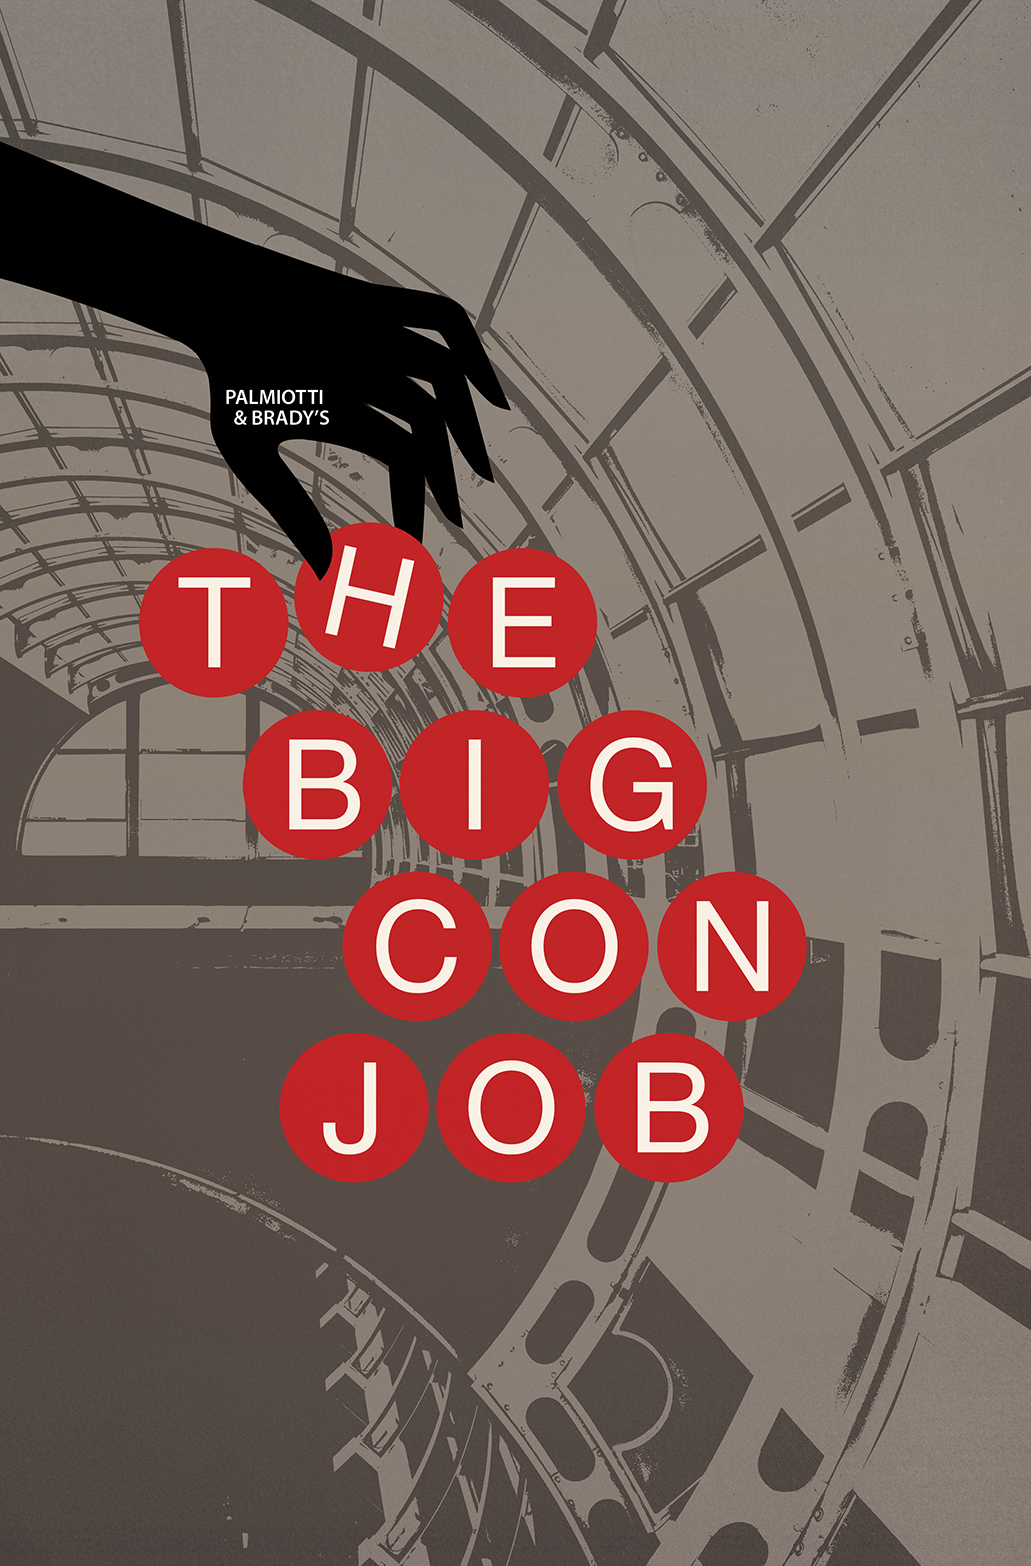 Palmiotti & Brady's The Big Con Job #1 Jackpot Variant